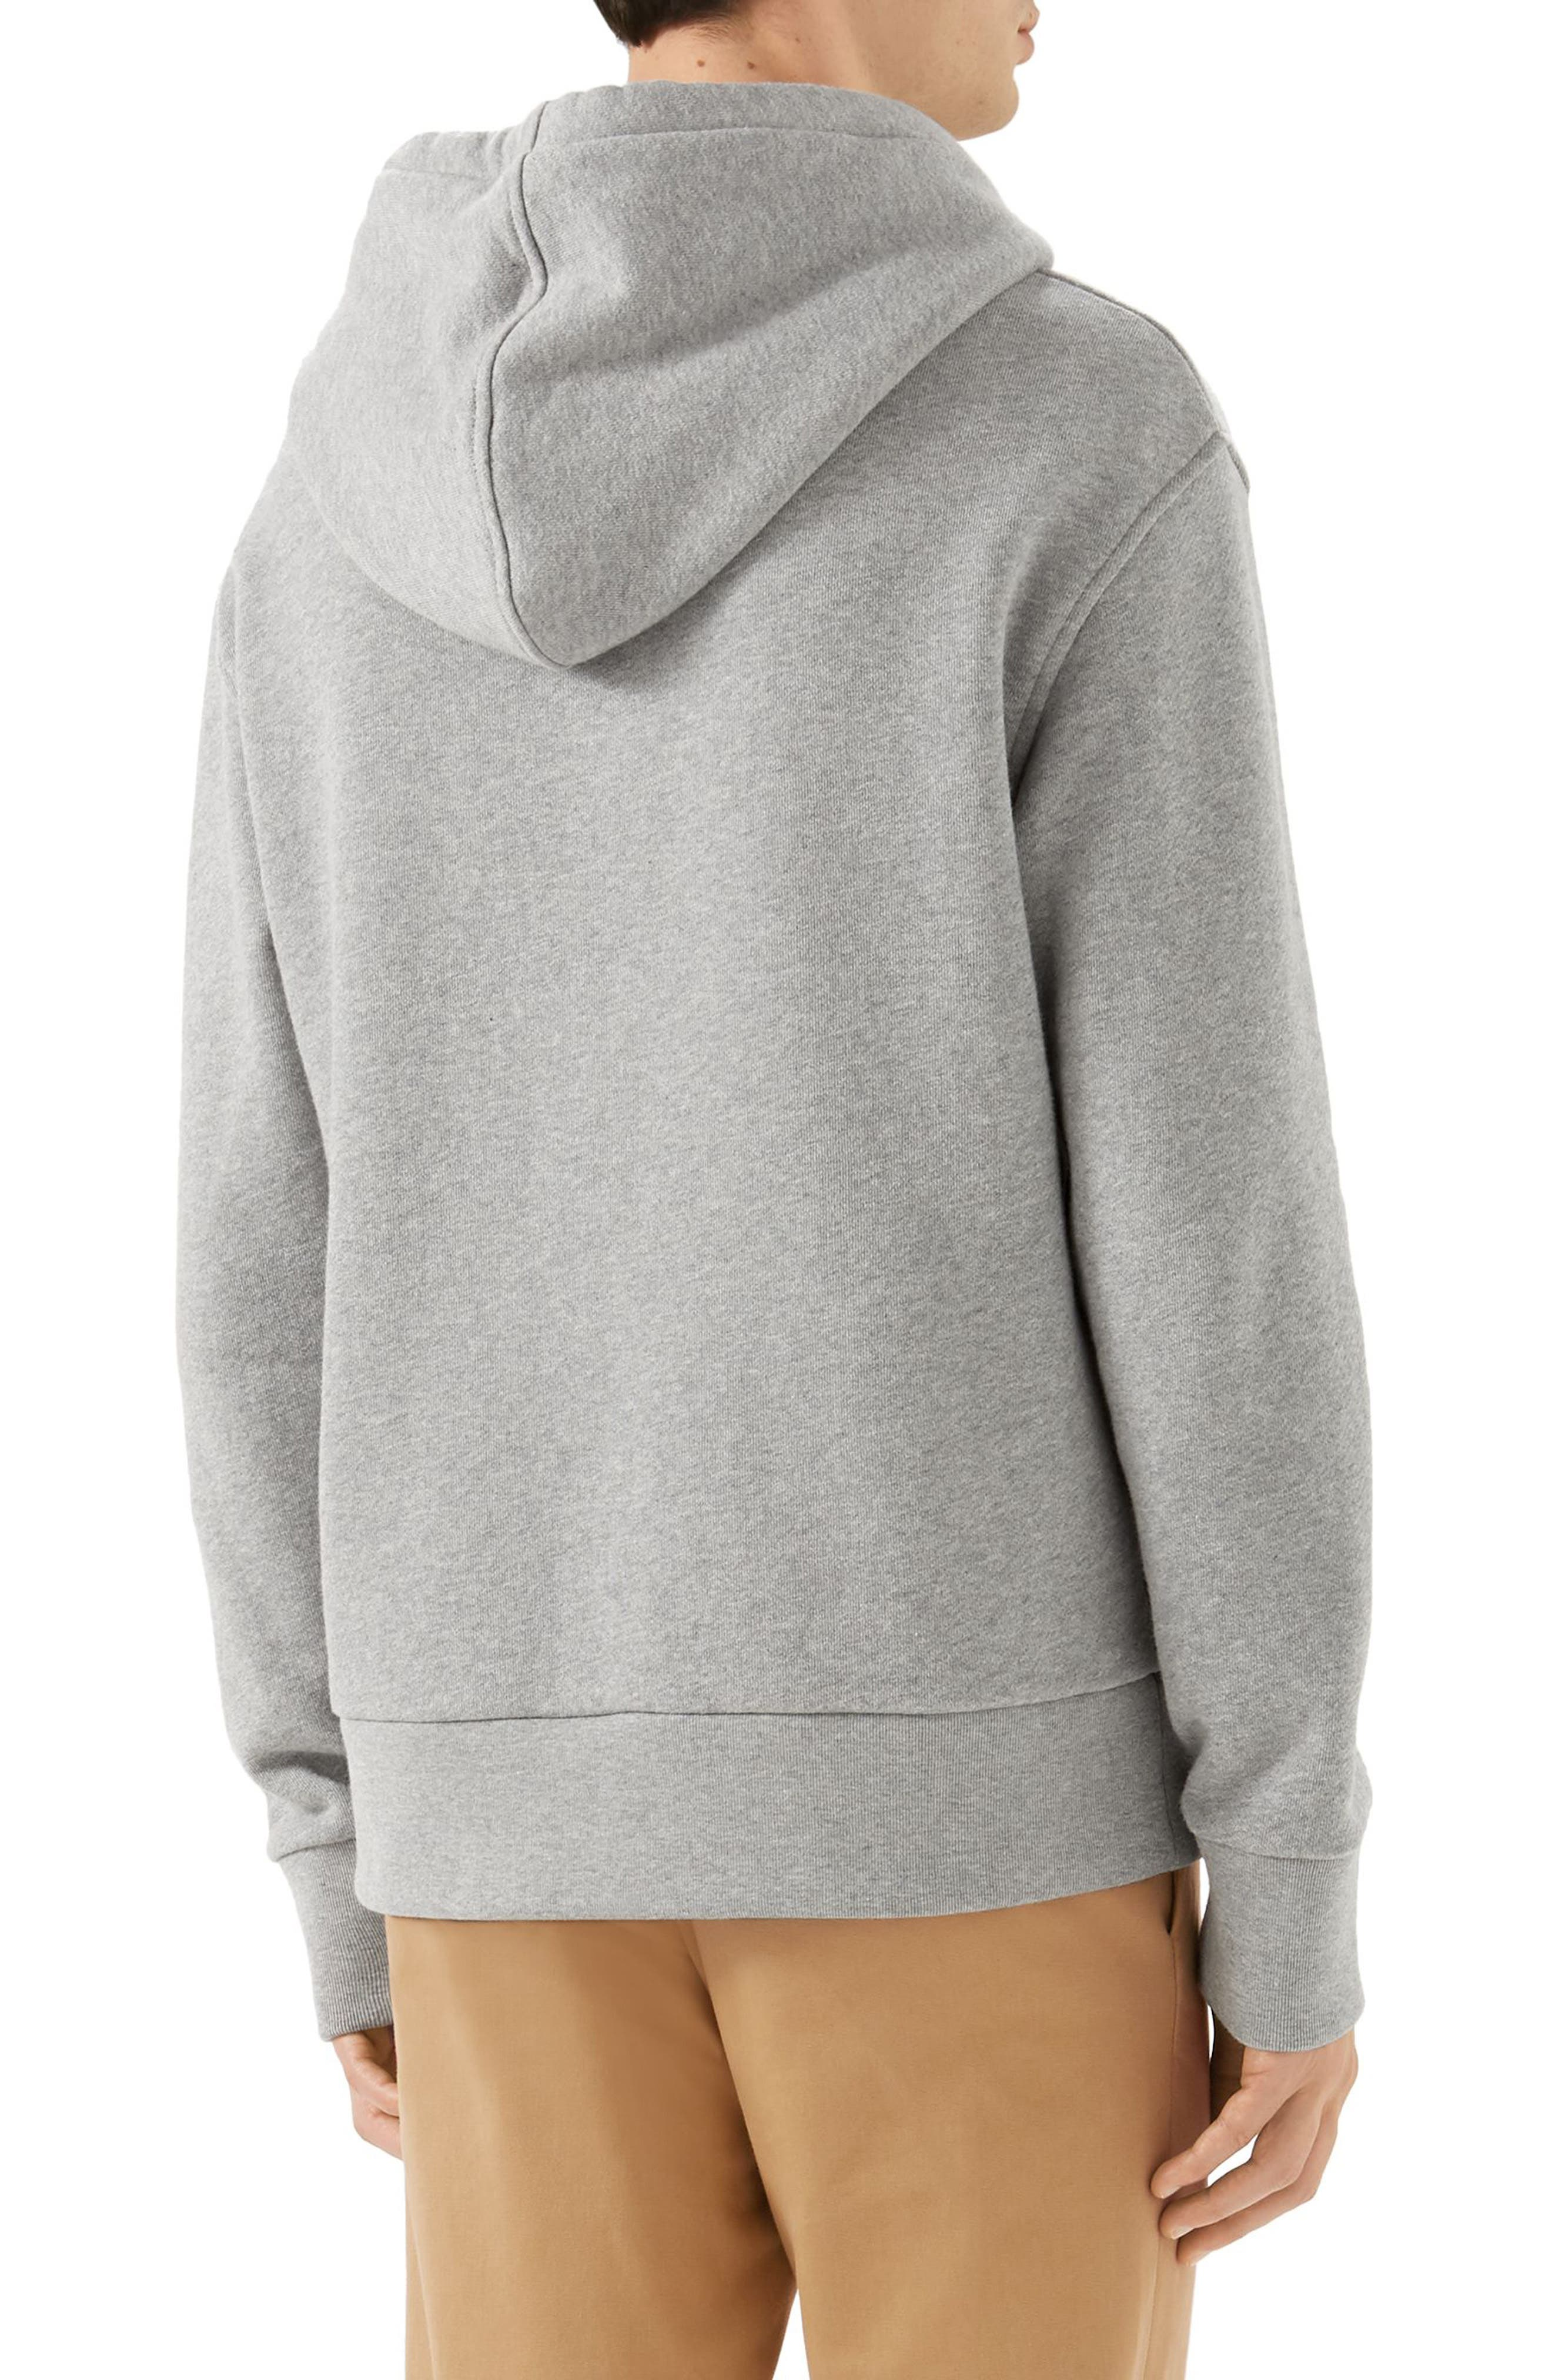 Invitation Graphic Hoodie,                             Alternate thumbnail 2, color,                             GREY MELANGE